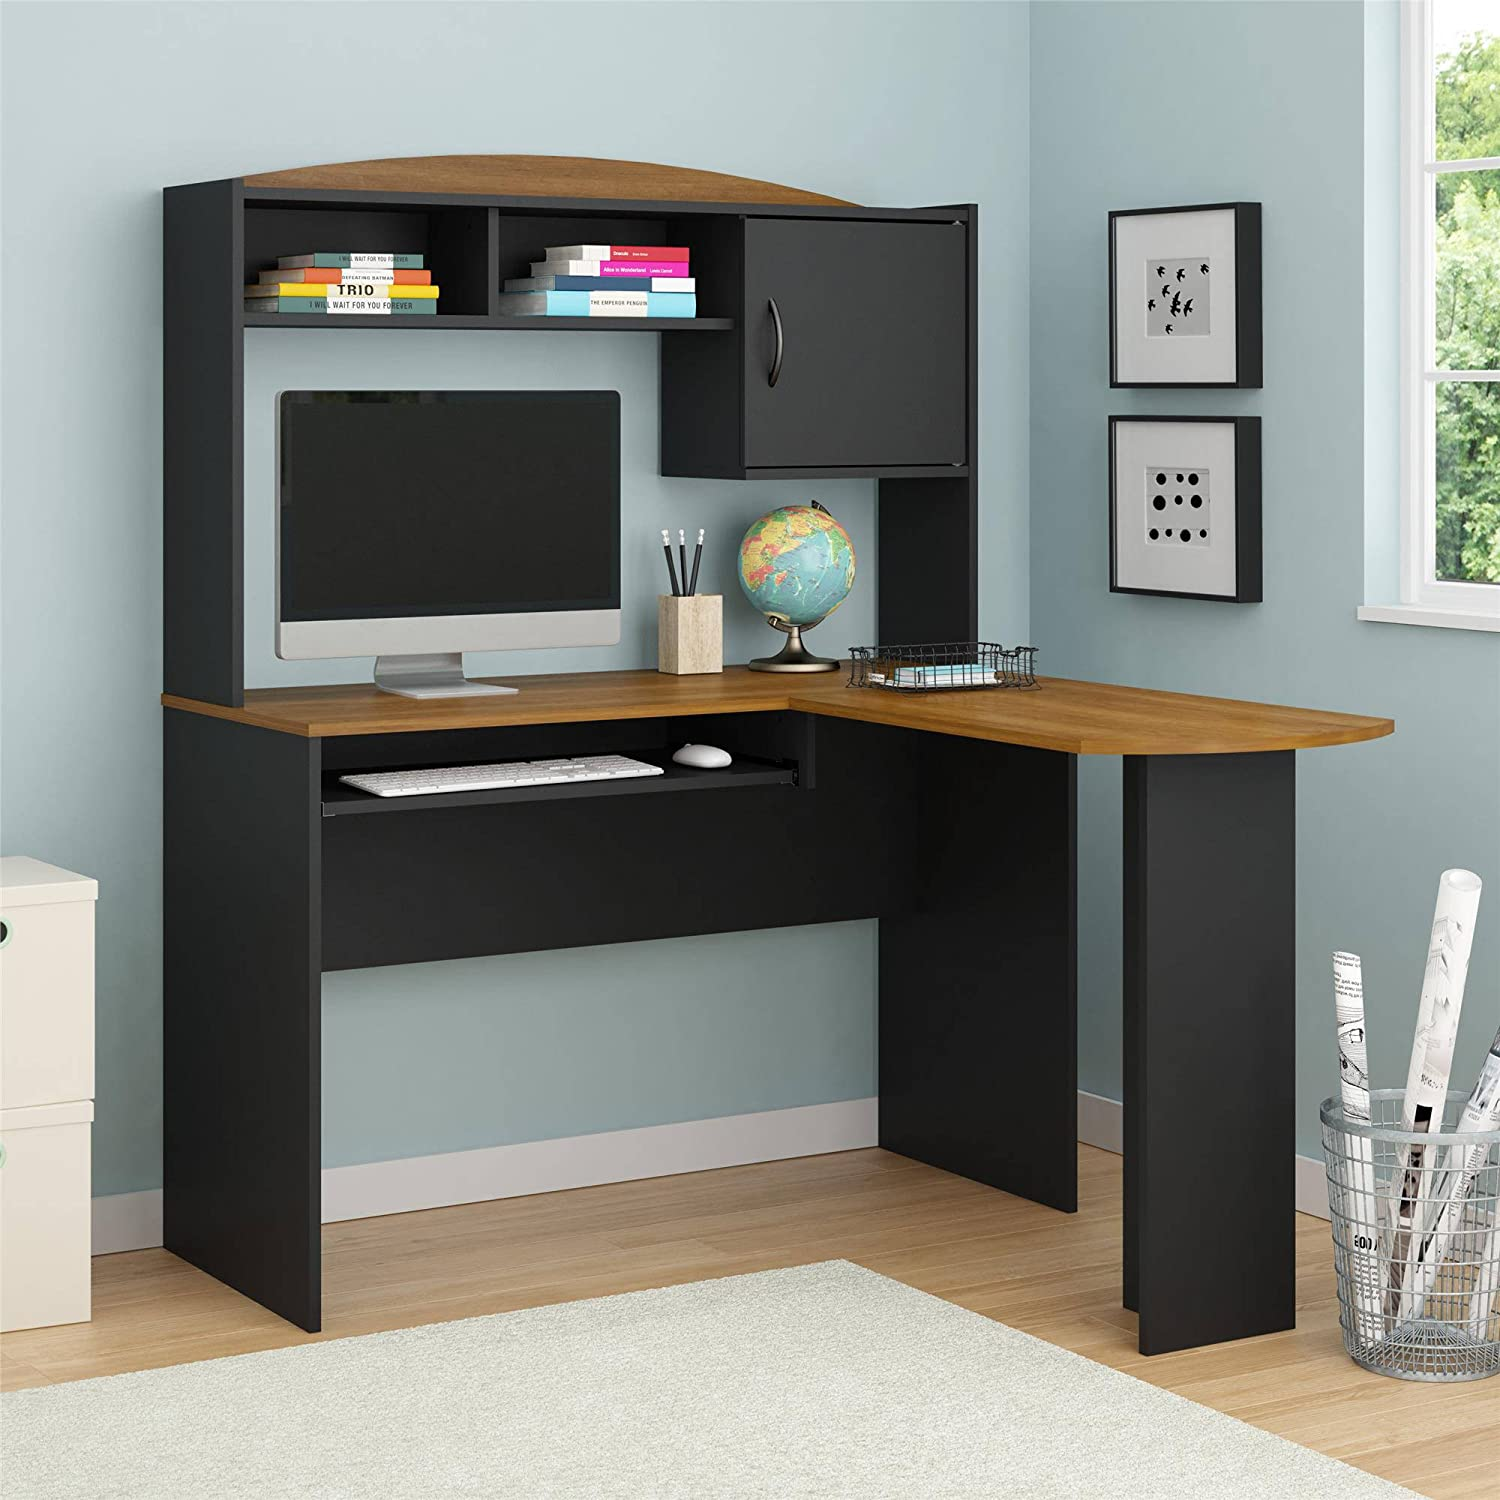 Amazon Home and fice Wooden L Shaped Desk with Hutch A